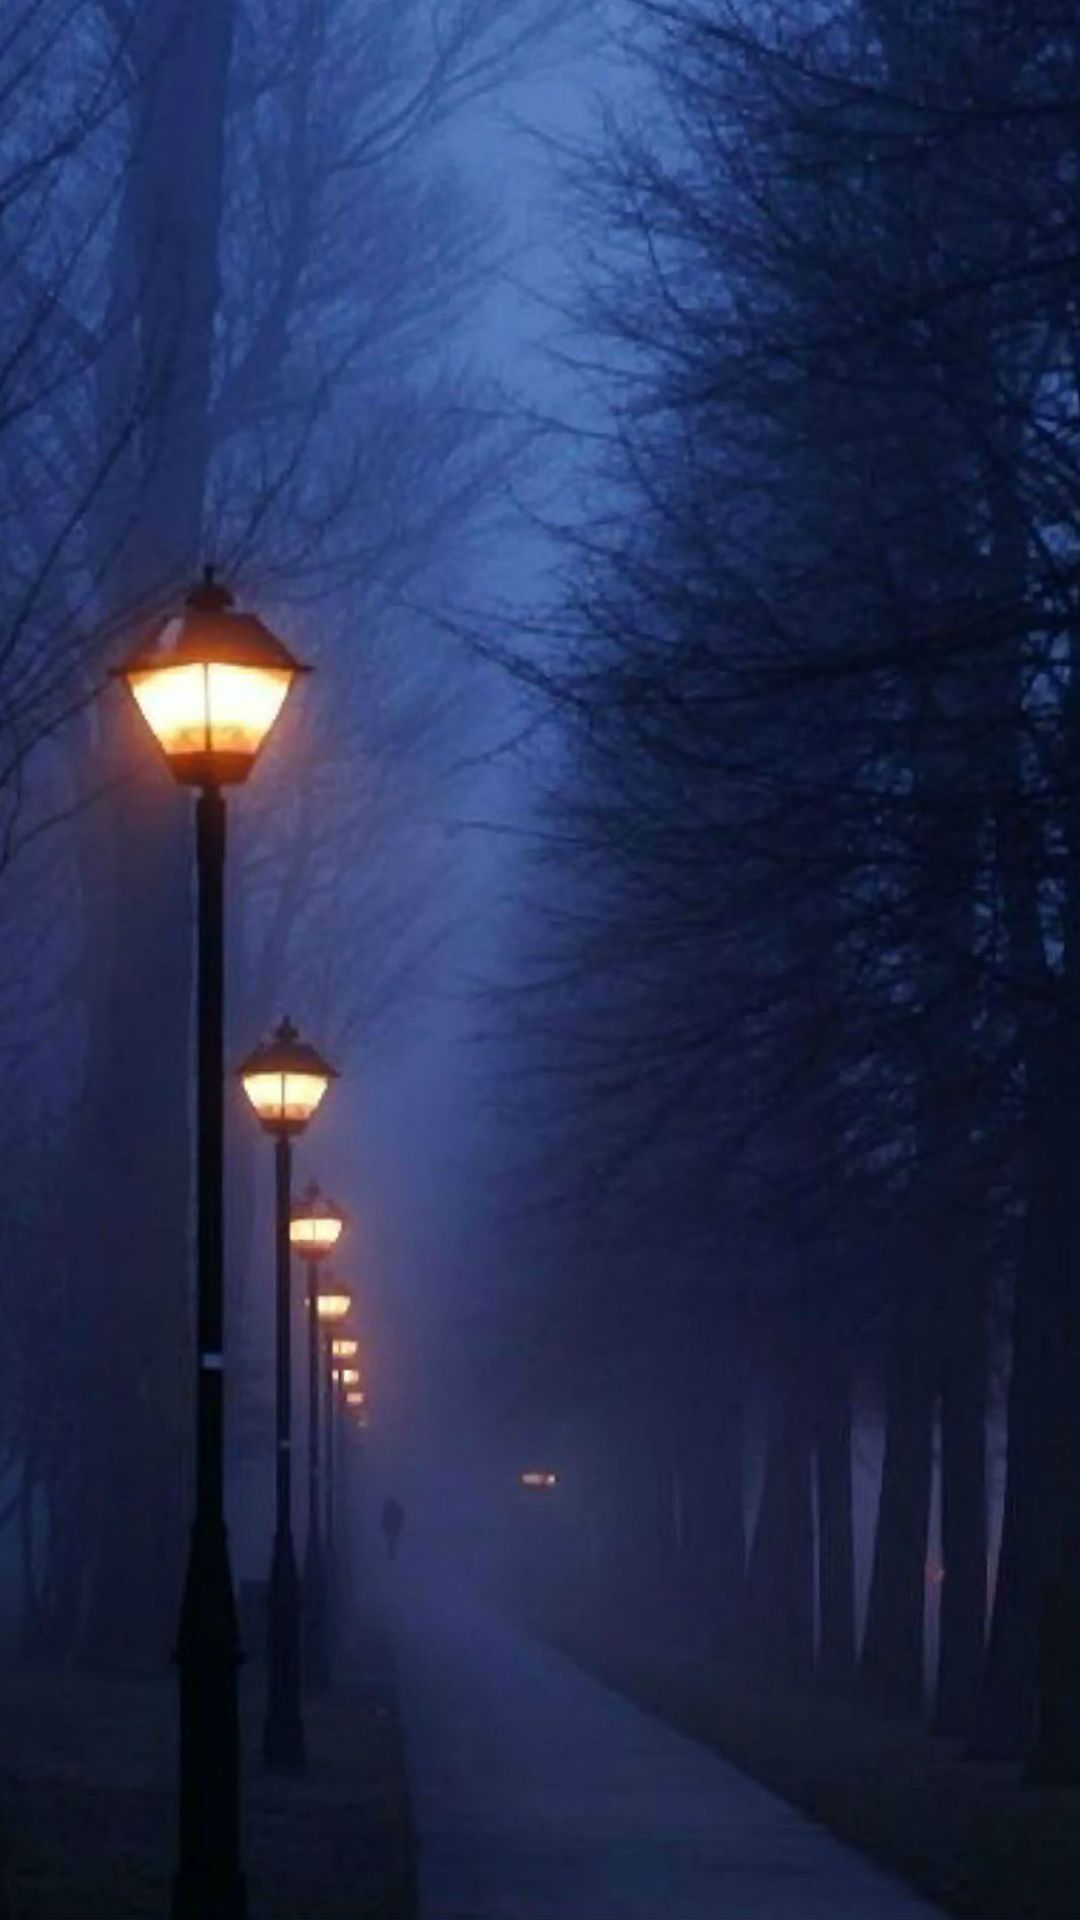 4000 Hd Wallpapers For Android Smartphones Iphones Free Foggy Night Scenery Pictures